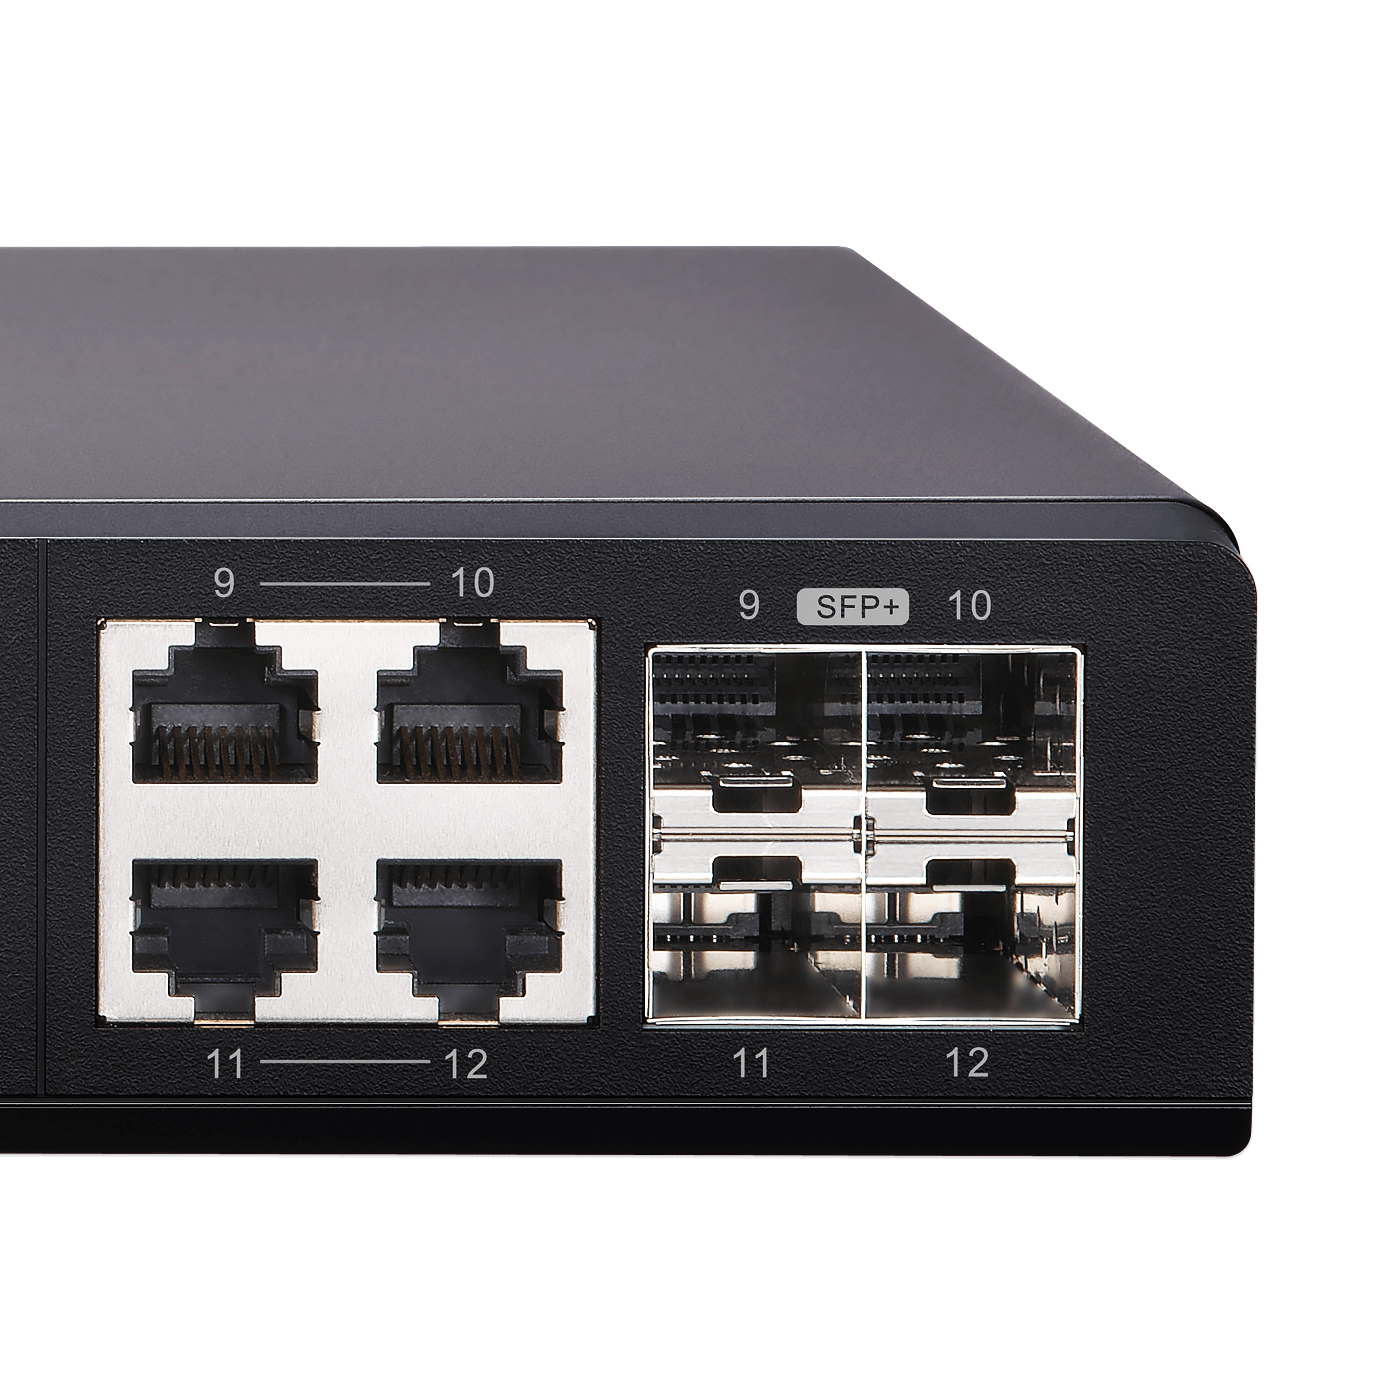 10GbE Switch: QSW-1208-8C - Features | QNAP